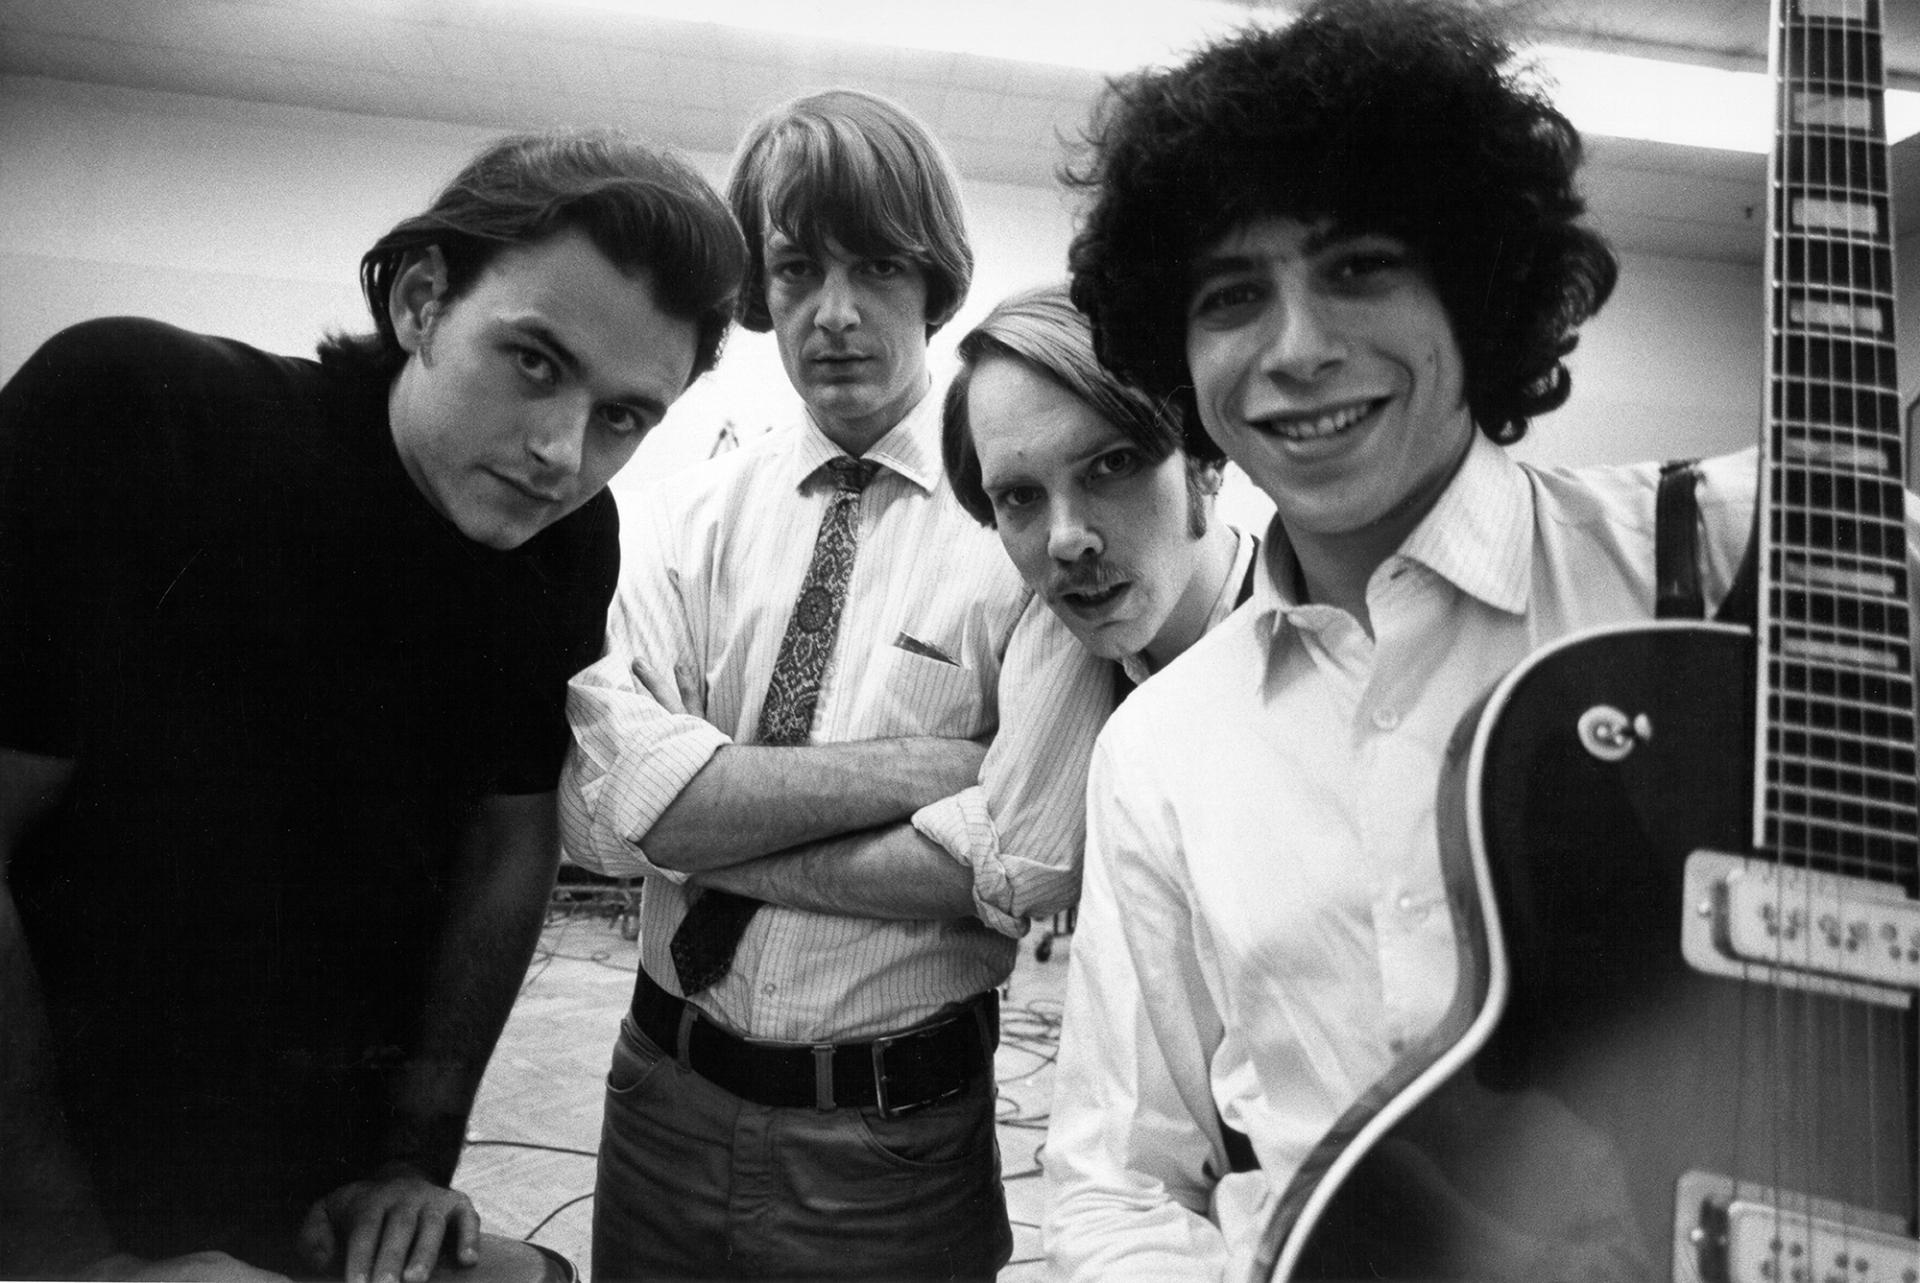 The youngbloods 1967